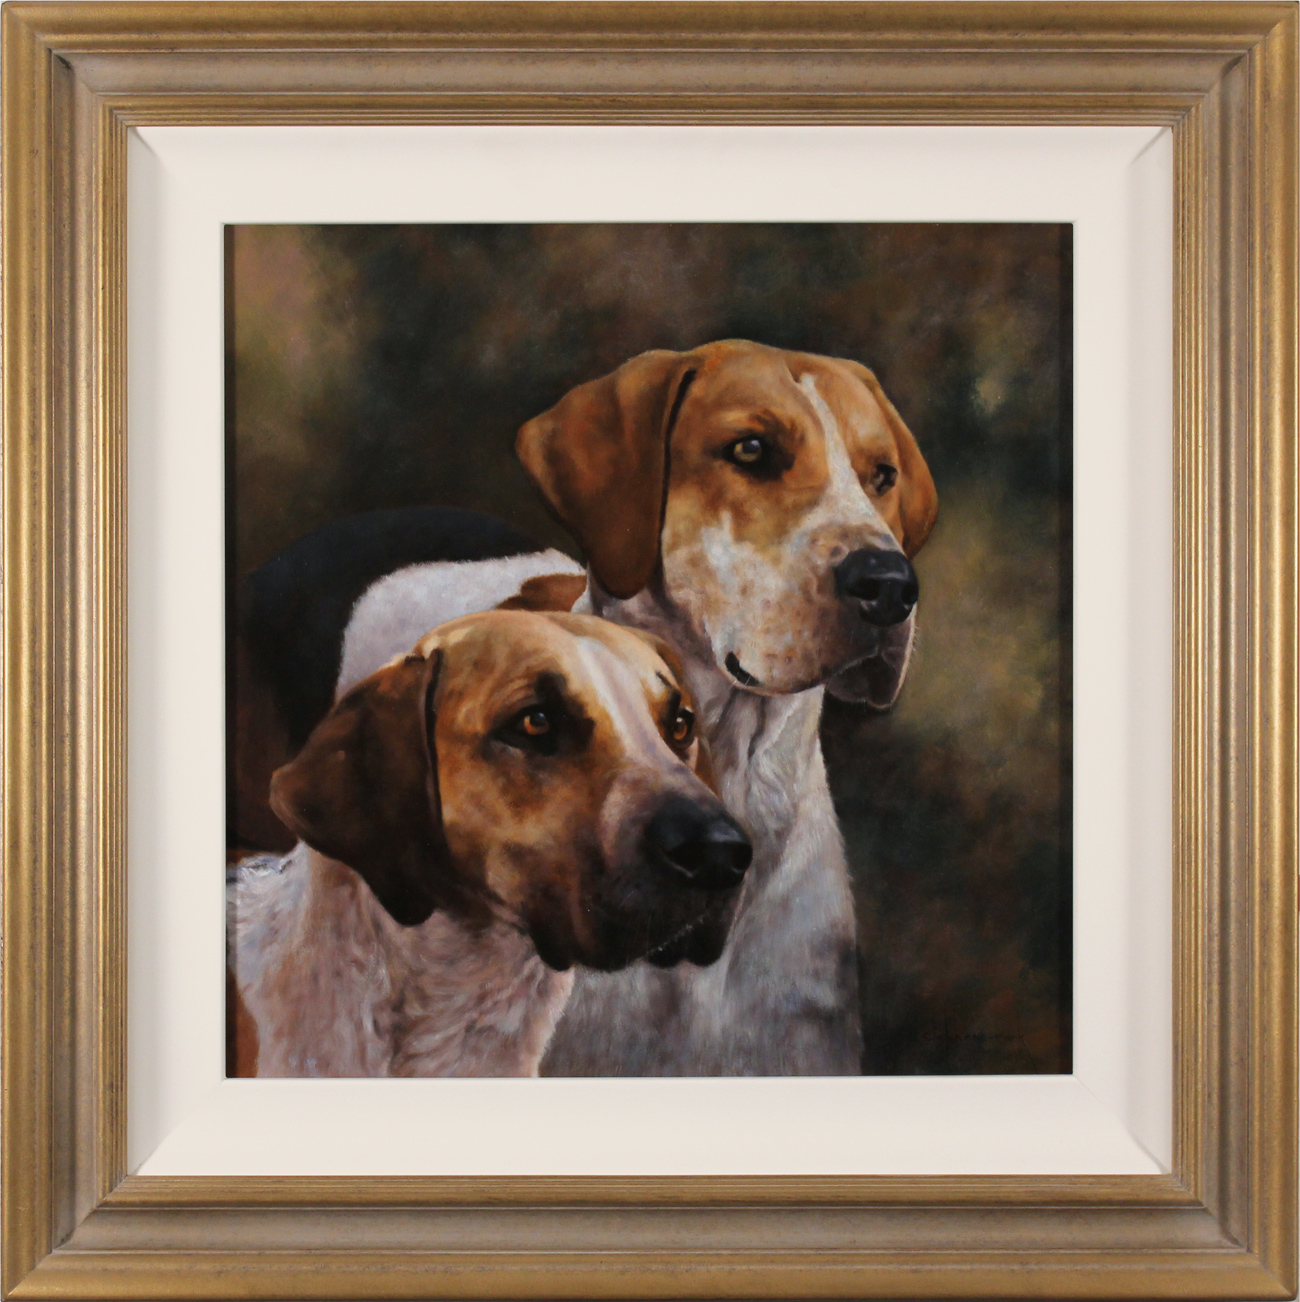 Stephen Park, Original oil painting on panel, Hounds Click to enlarge